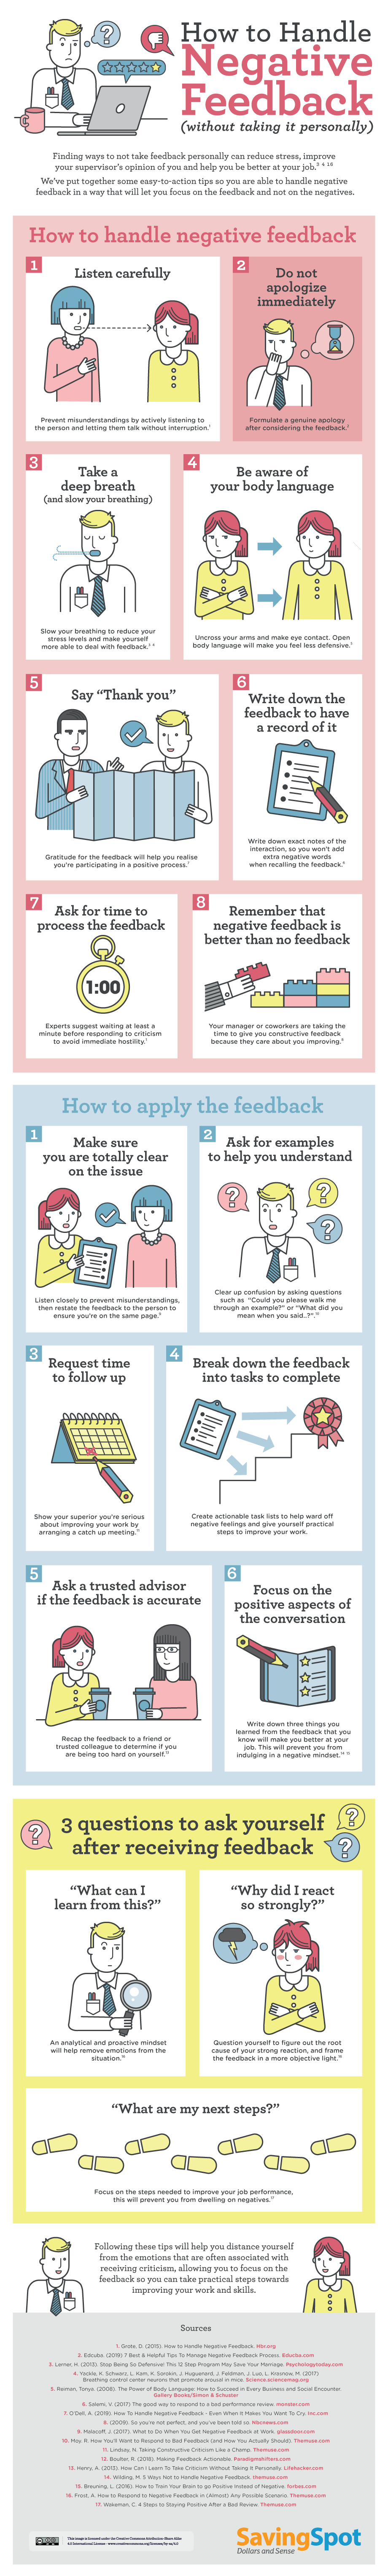 How-to-Handle-Negative-Feedback